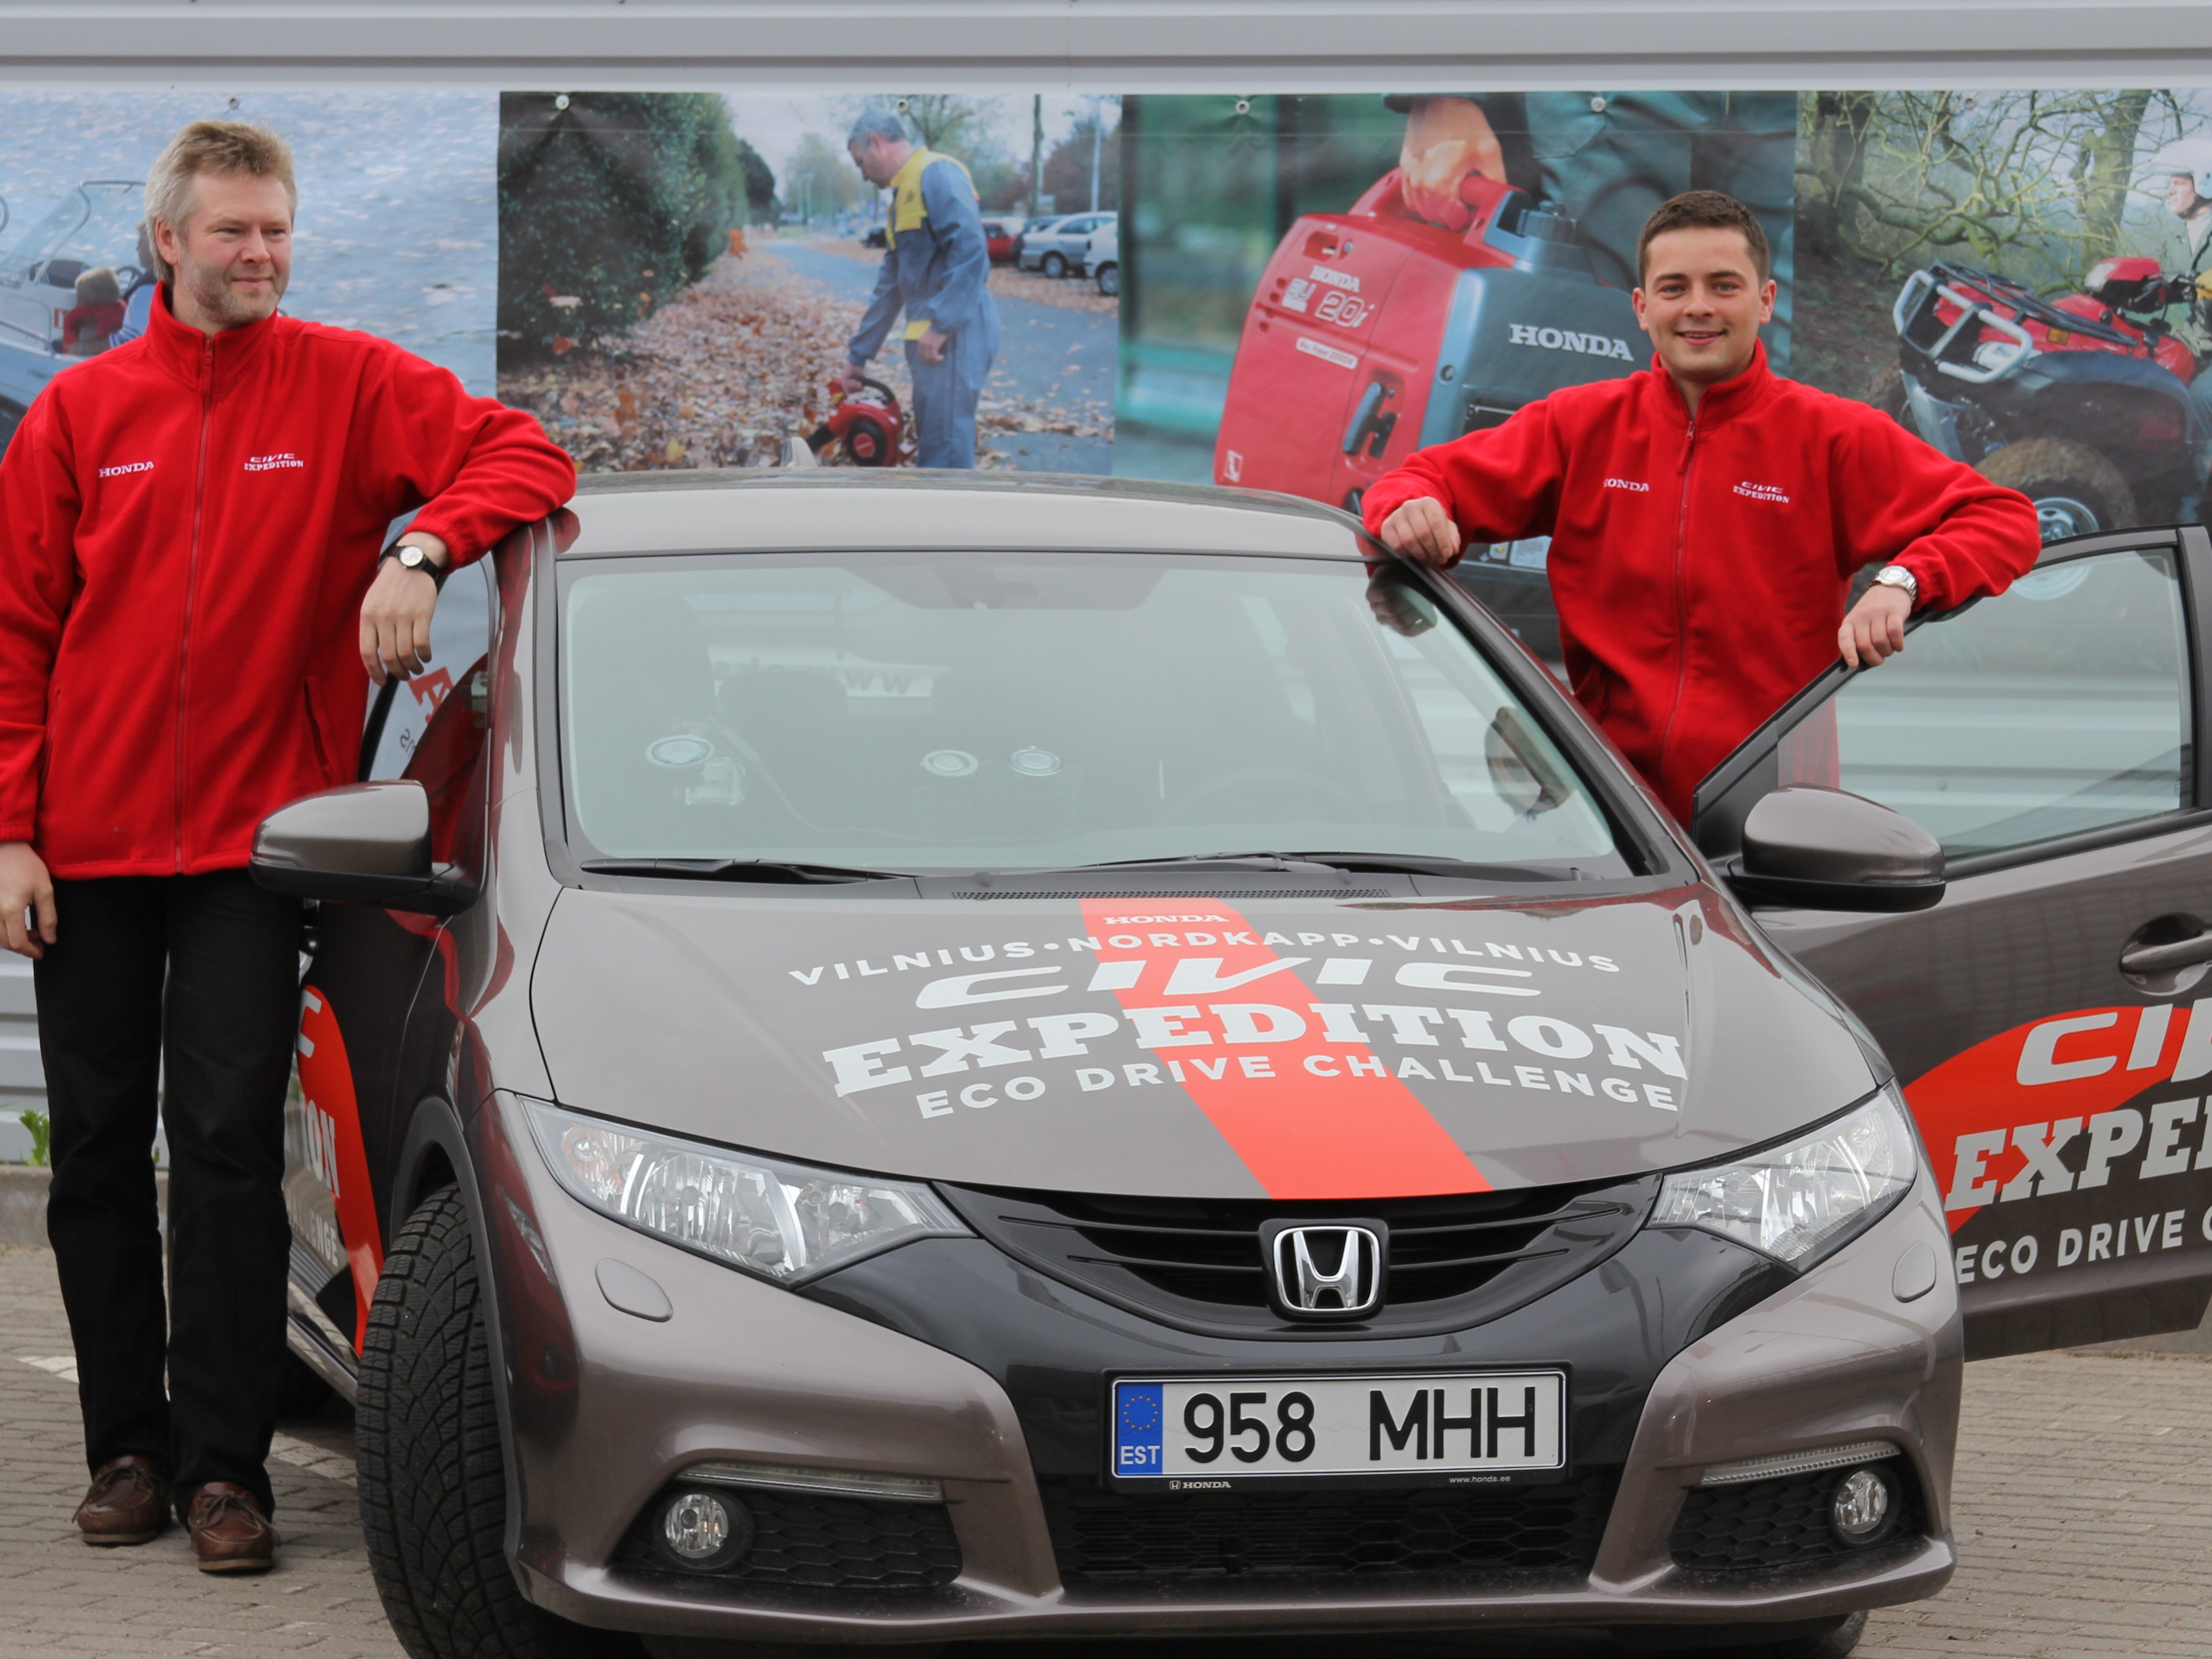 Honda Expedition LT winners